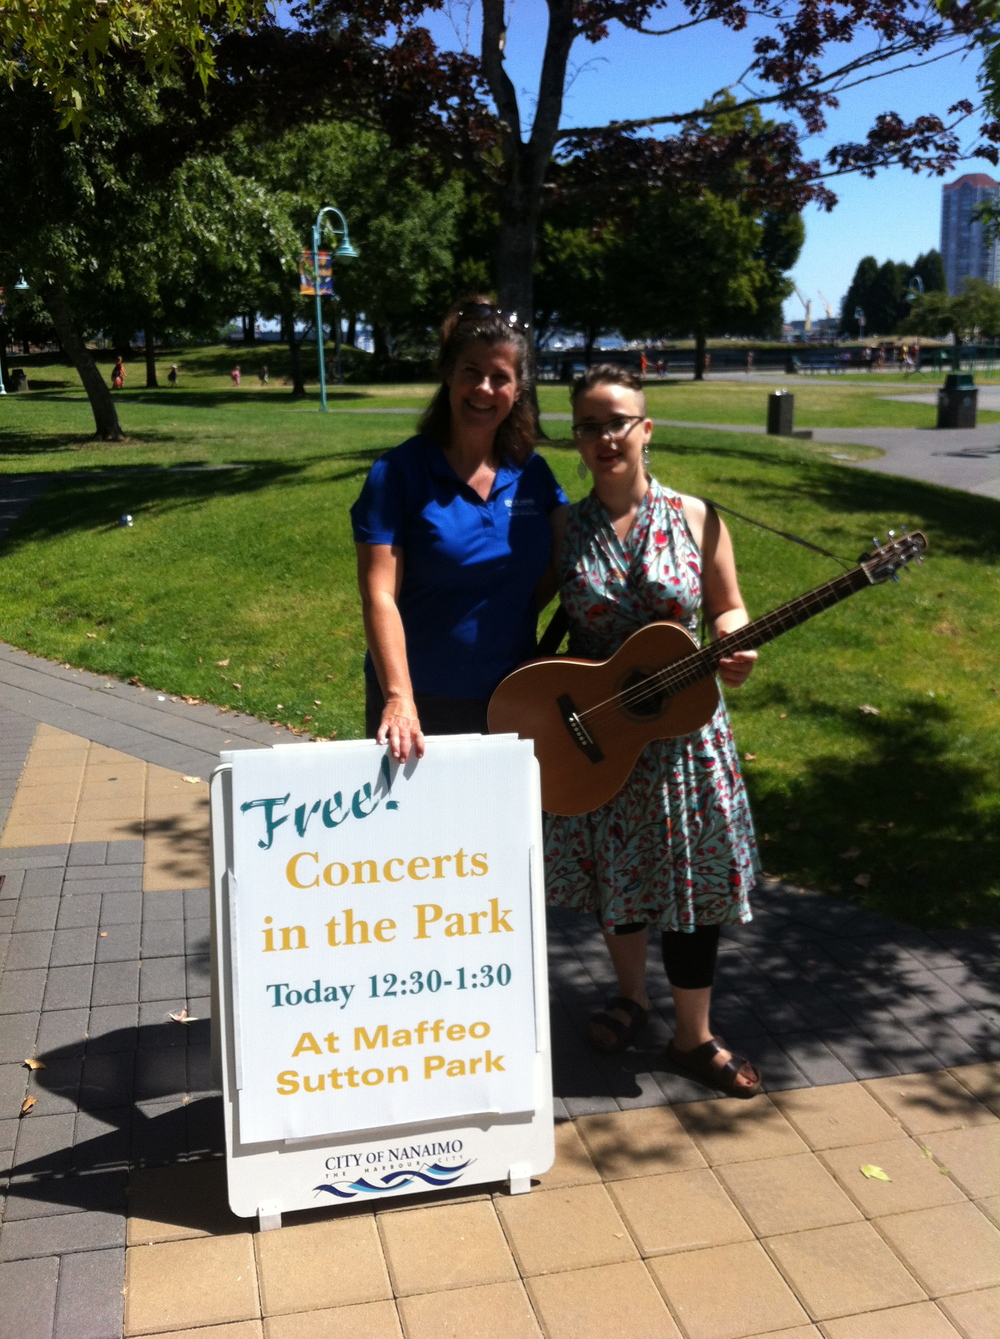 Thanks Nanaimo concert series!!! What a great afternoon  - Maffeo Sutton Park, Nanaimo